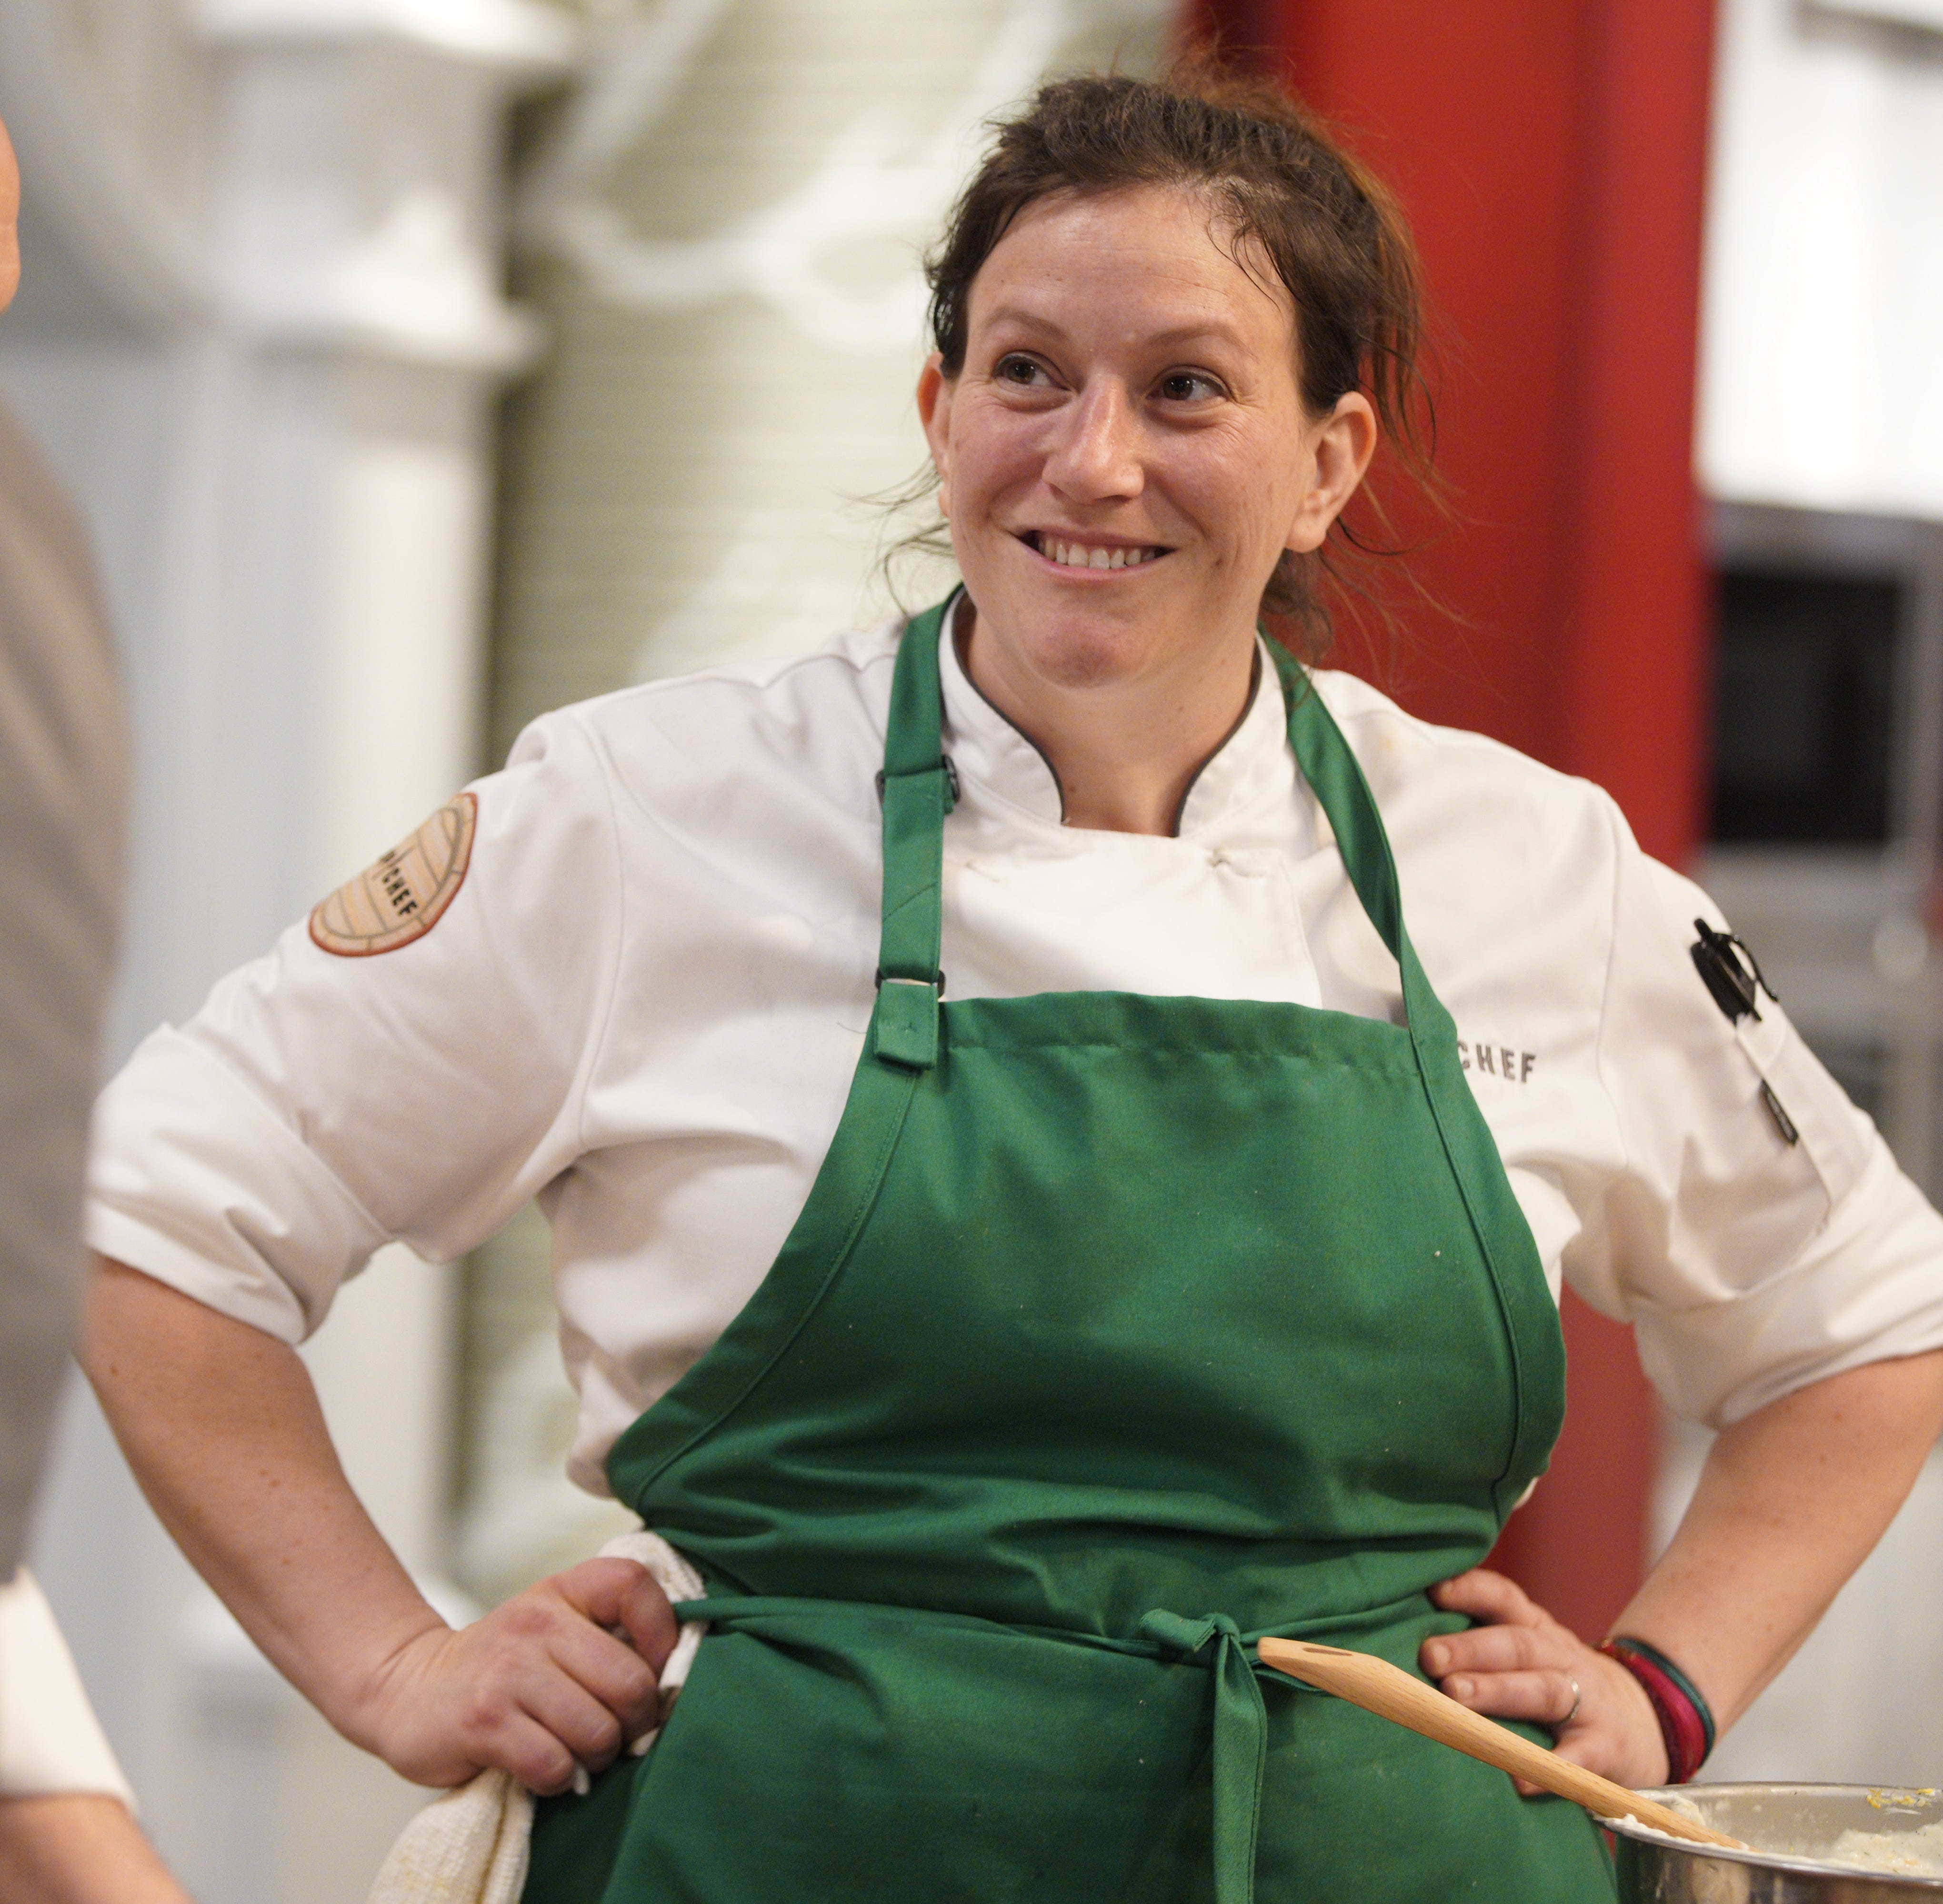 For Kentucky chef Sara Bradley, nothing will be the same after 'Top Chef'